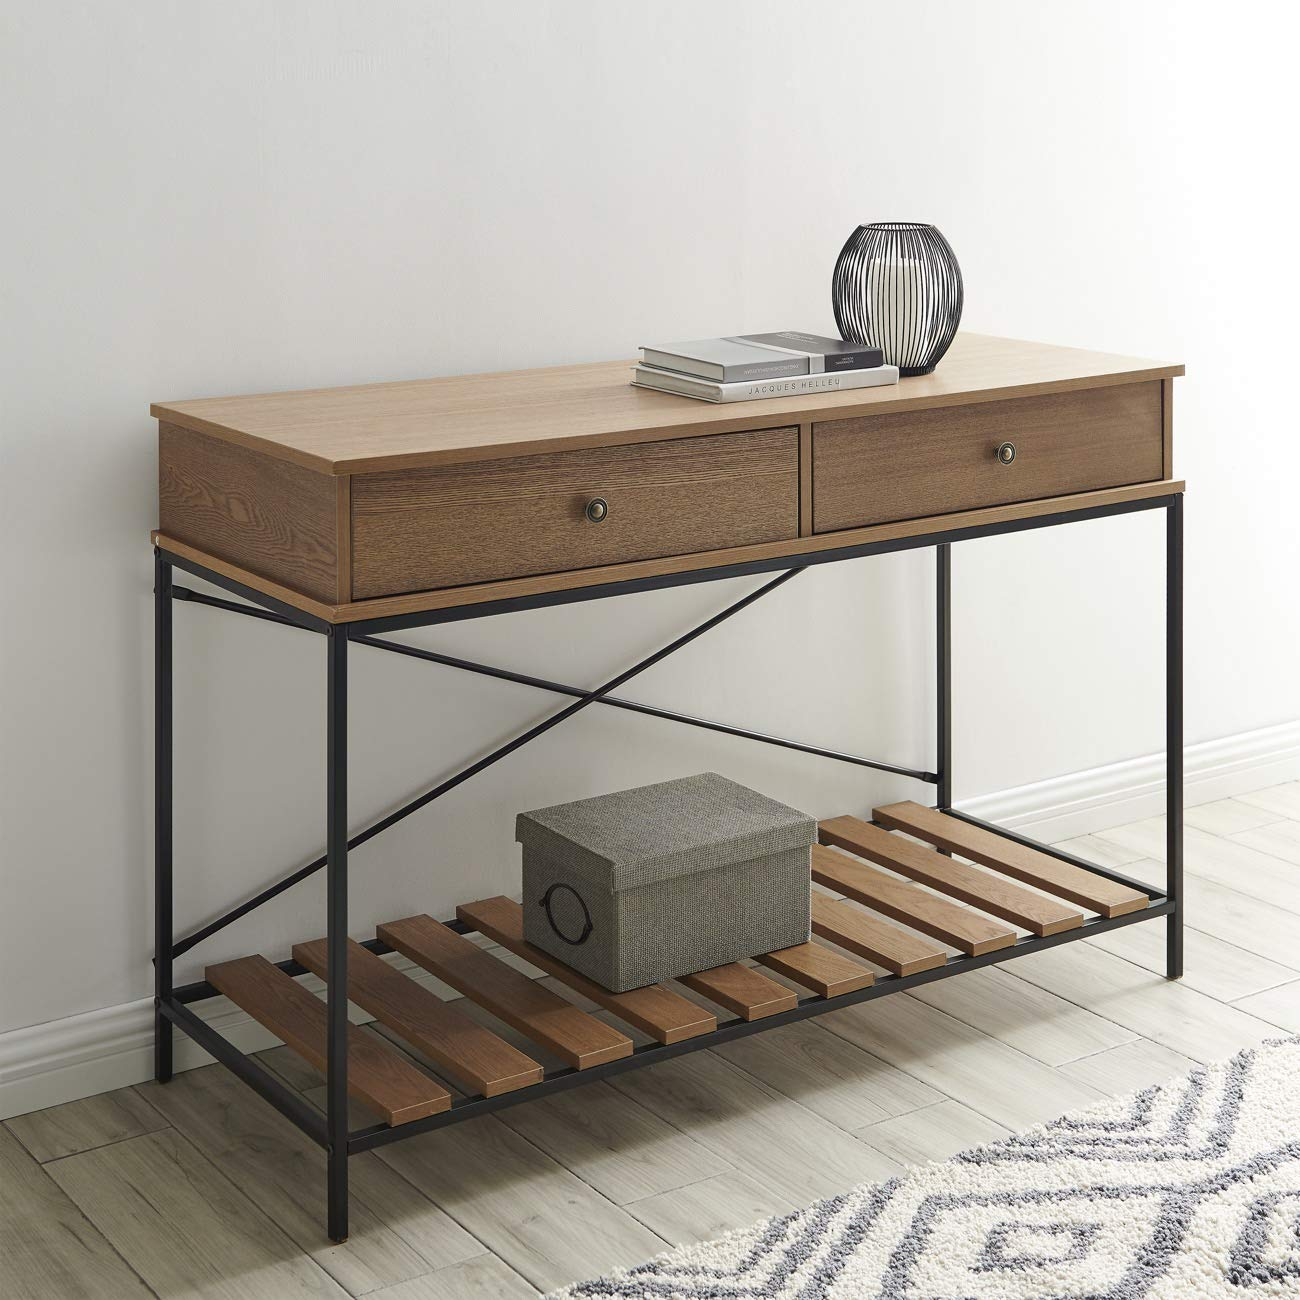 BELLEZE Traditional Wood and Metal Criss-Cross Console Table, Brown by Belleze